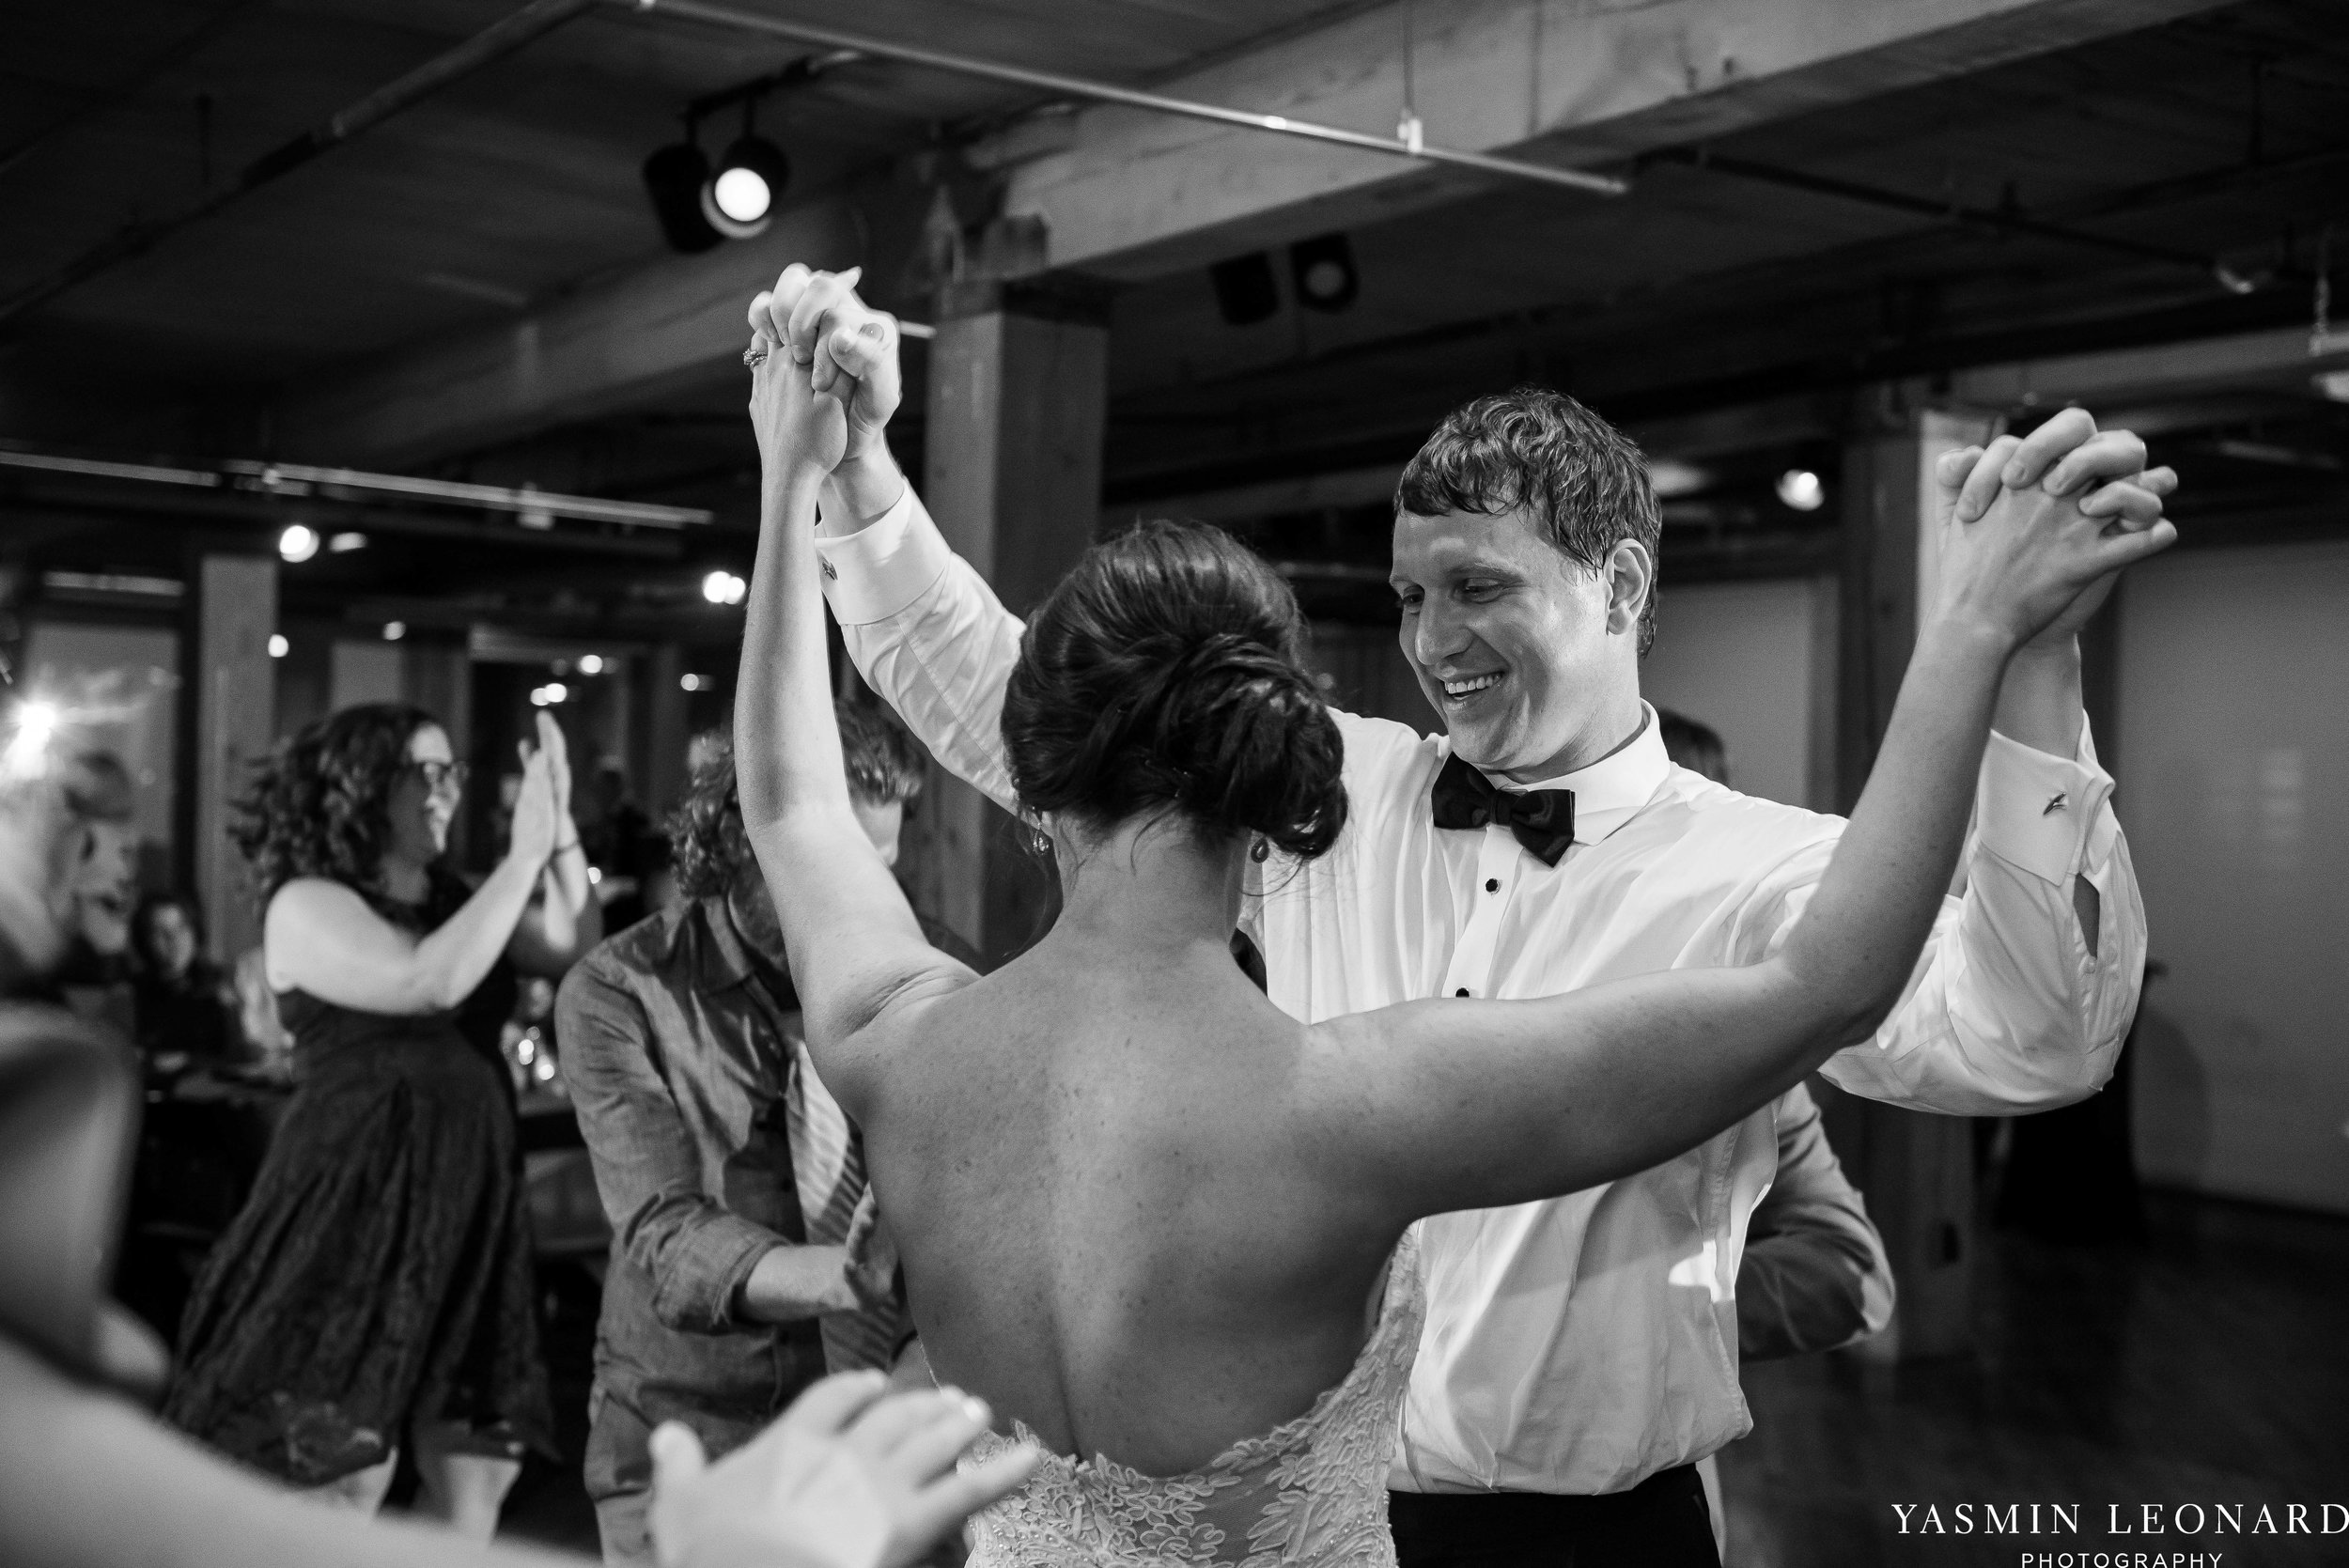 String and Splinter Club - Wesley Memorial UMC - High Point Weddings - NC Venues - High Point Weddings - Yasmin Leonard Photography-76.jpg